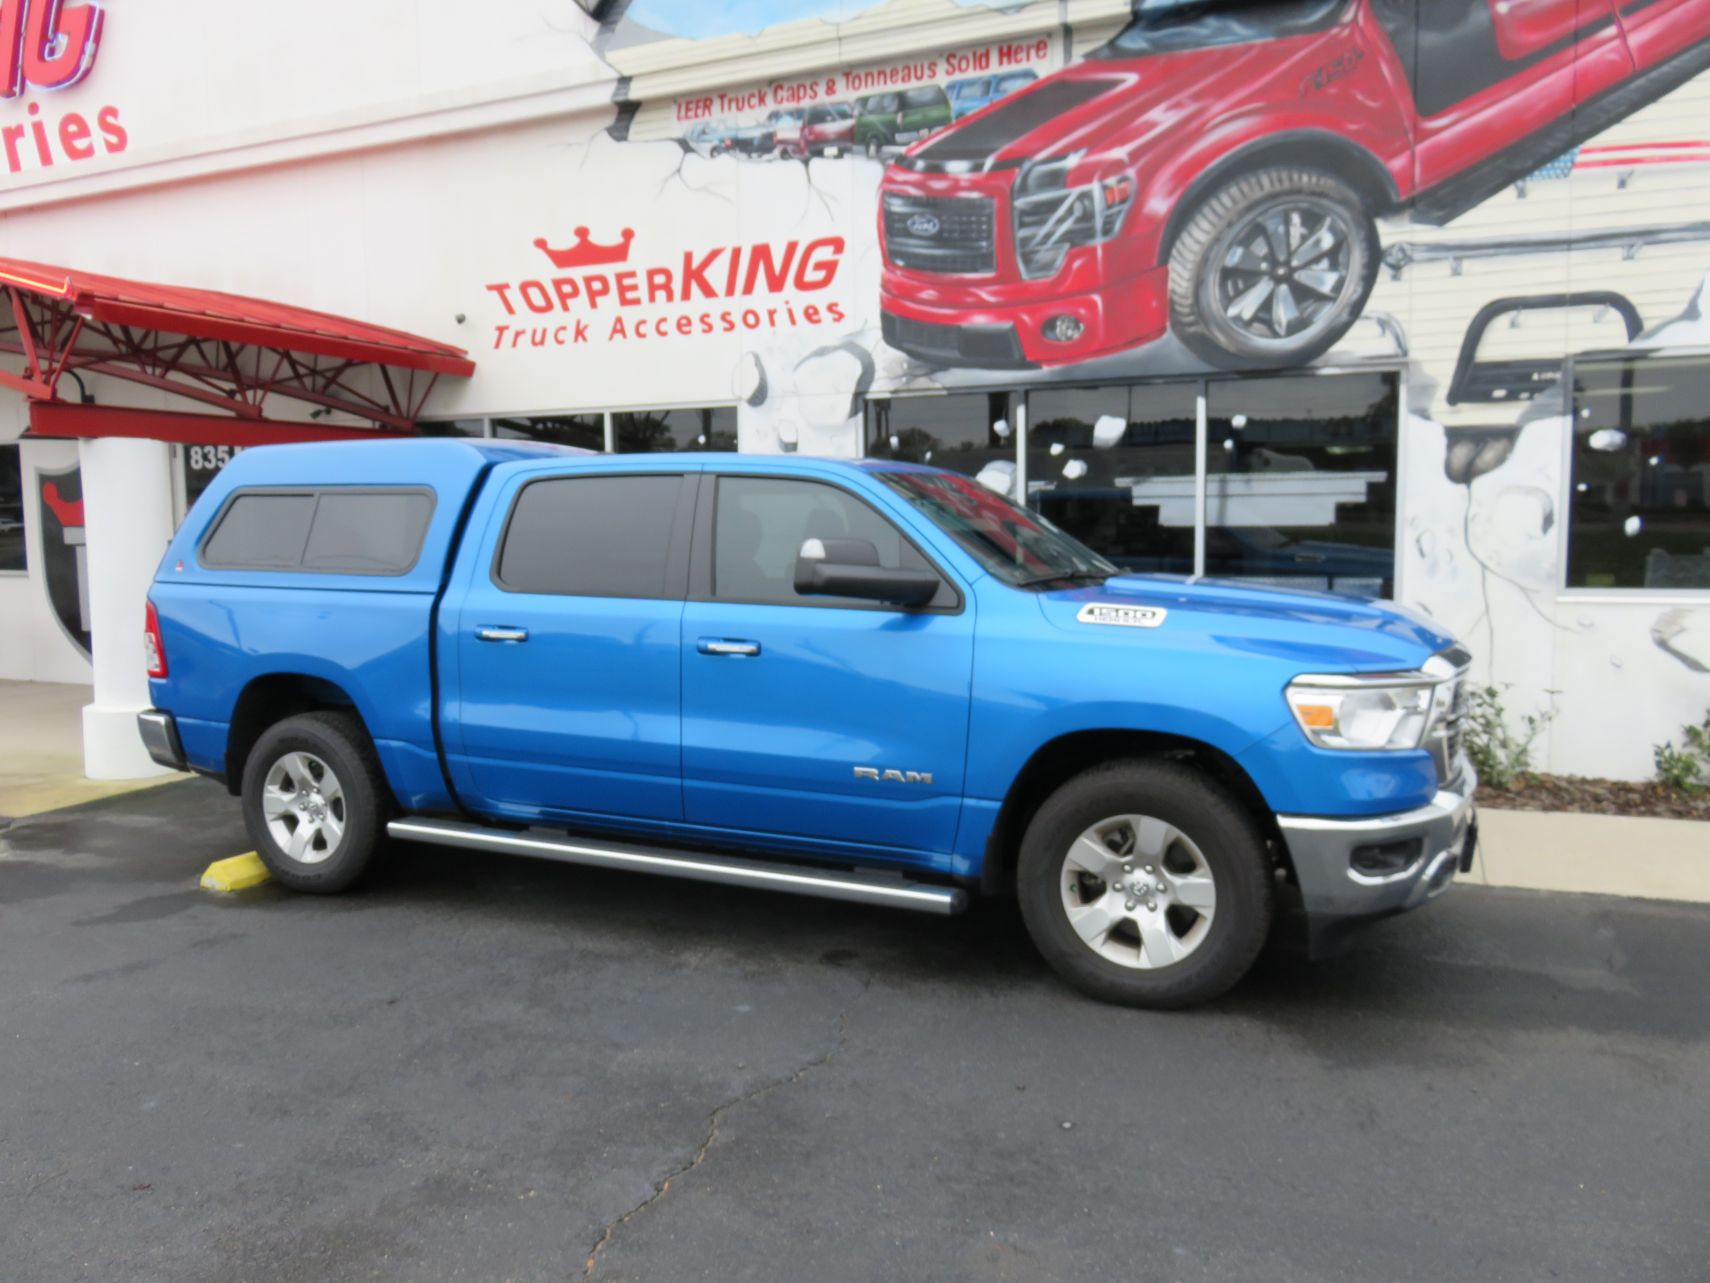 2020 Dodge RAM with LEER 180, Running Boards, Tint, Hitch by TopperKING Brandon 813-689-2449 or Clearwater FL 727-530-9066. Callus today!